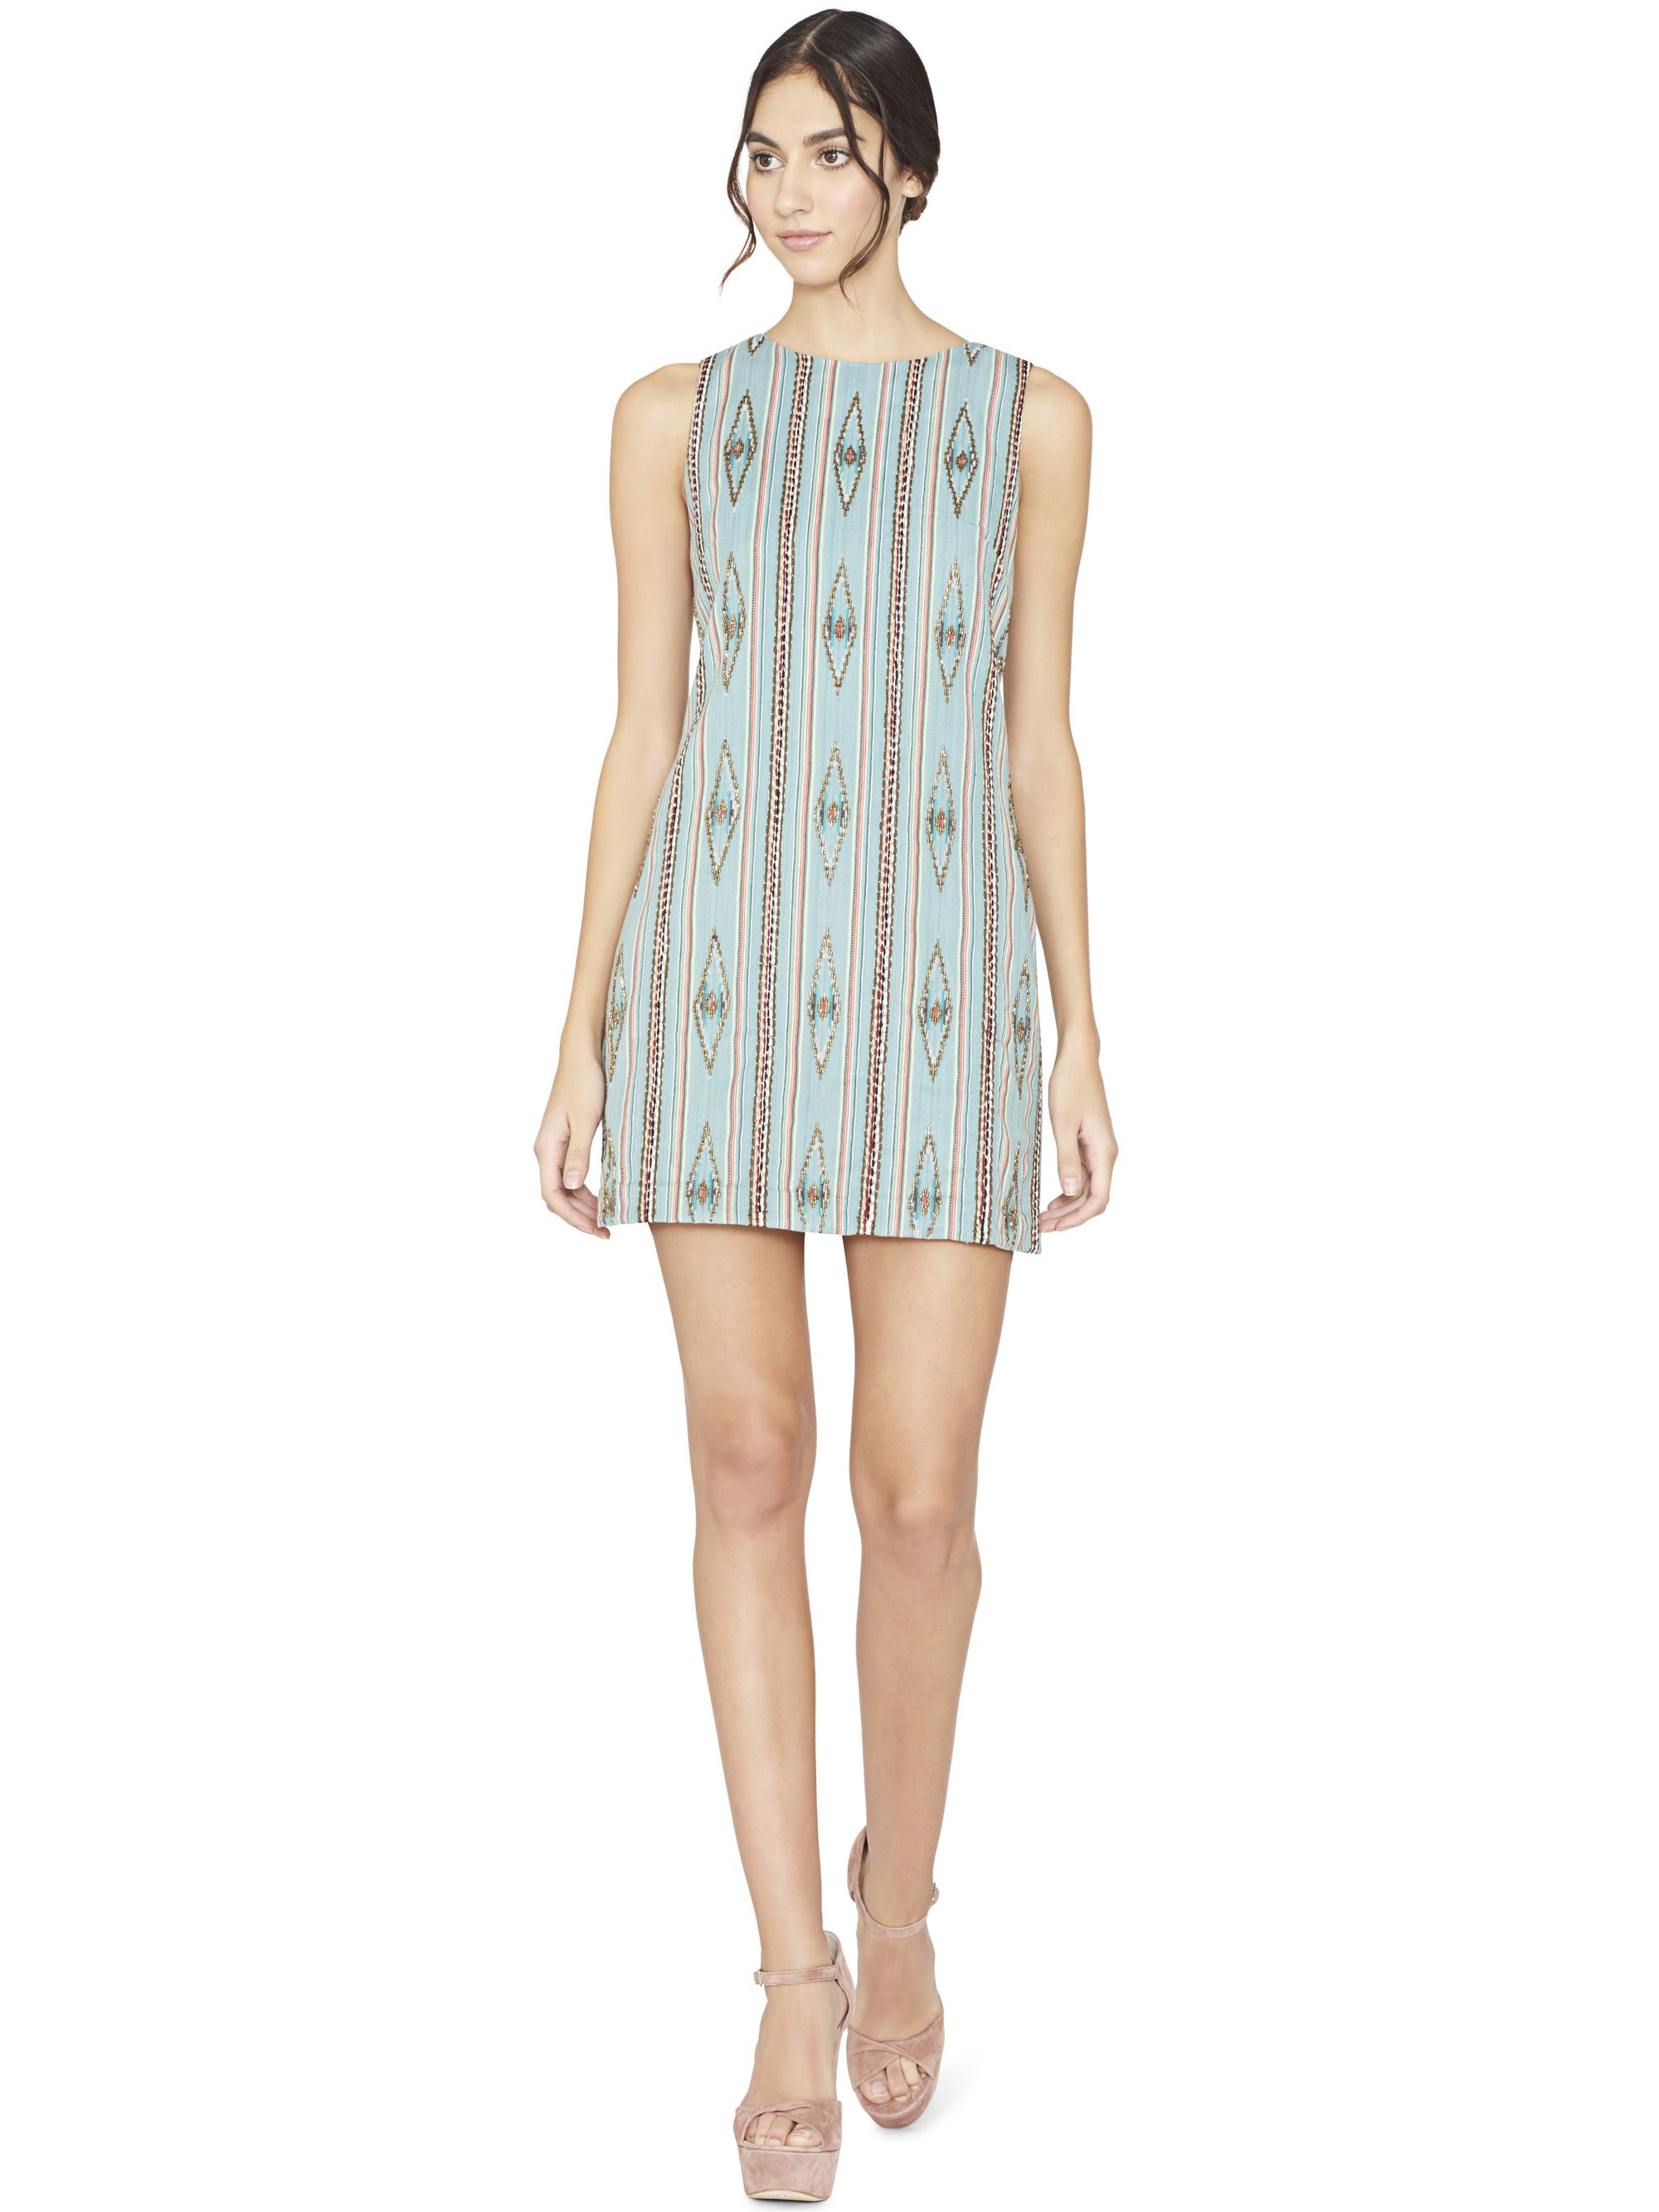 discover the clyde embellished shift dress from alice olivia